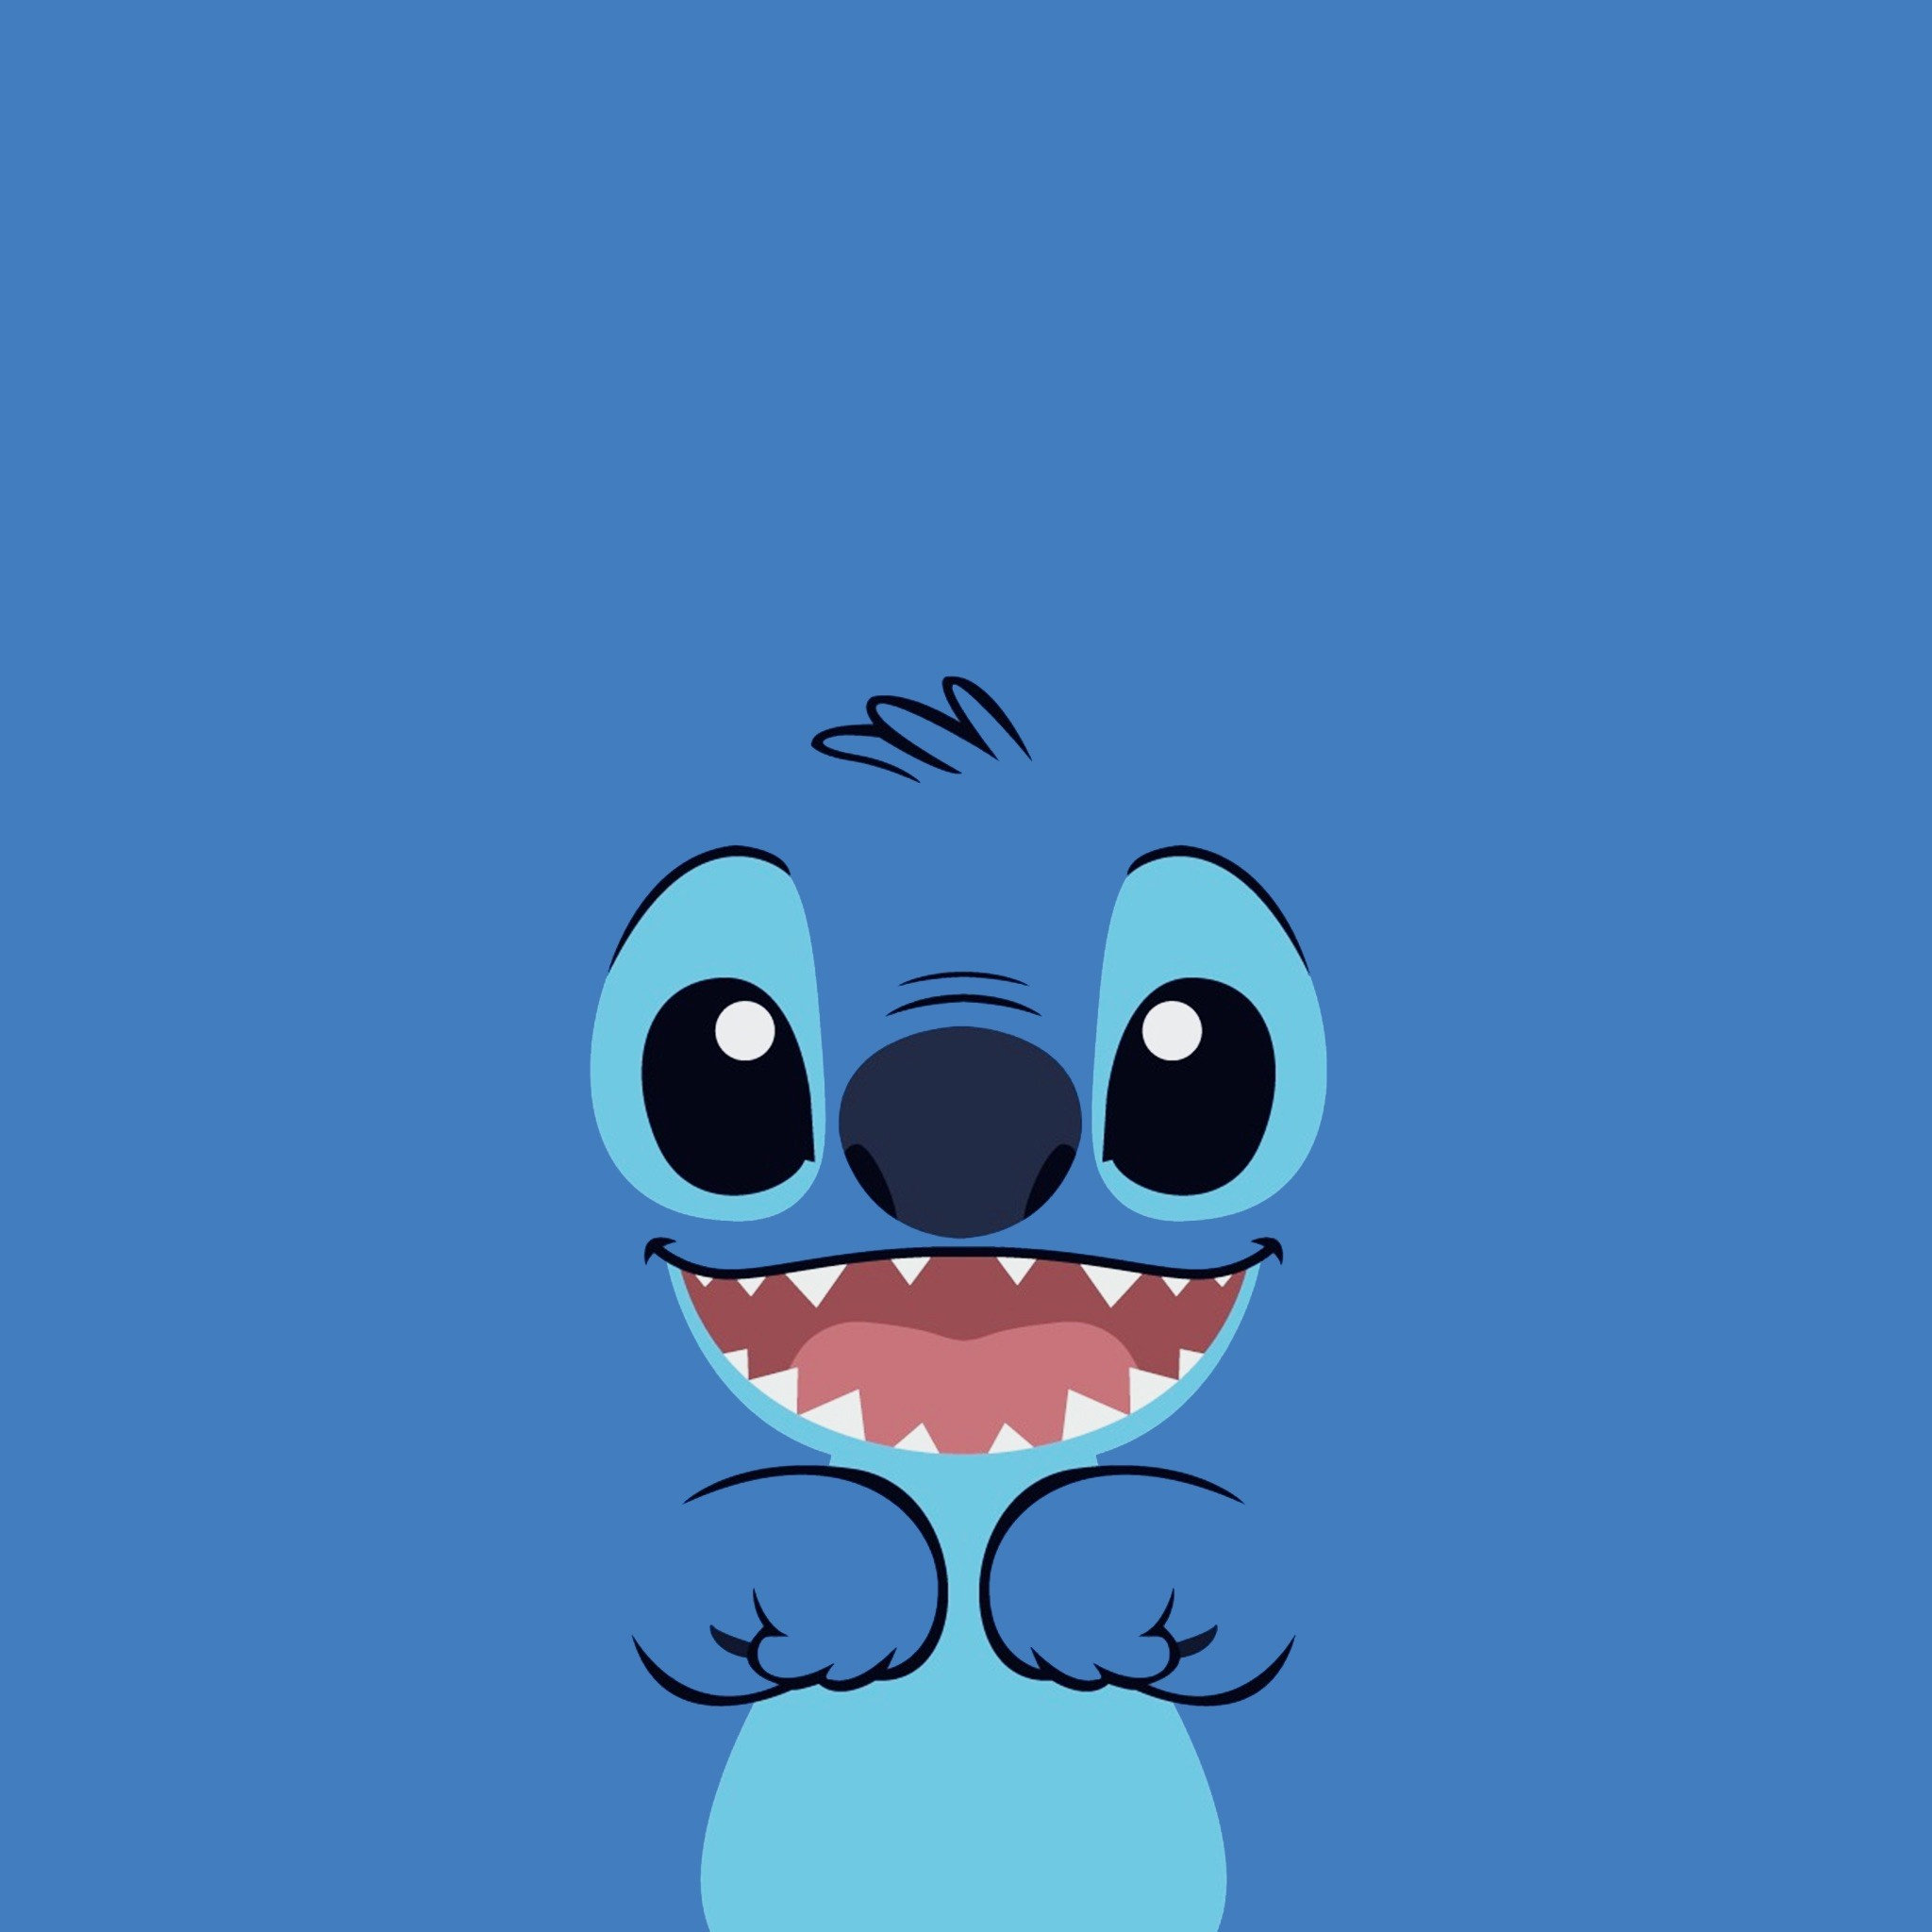 1600x2884 Cute Wallpaper For IPhone 5 Tumblr Fresh Cool Wallpapers Desktop Background